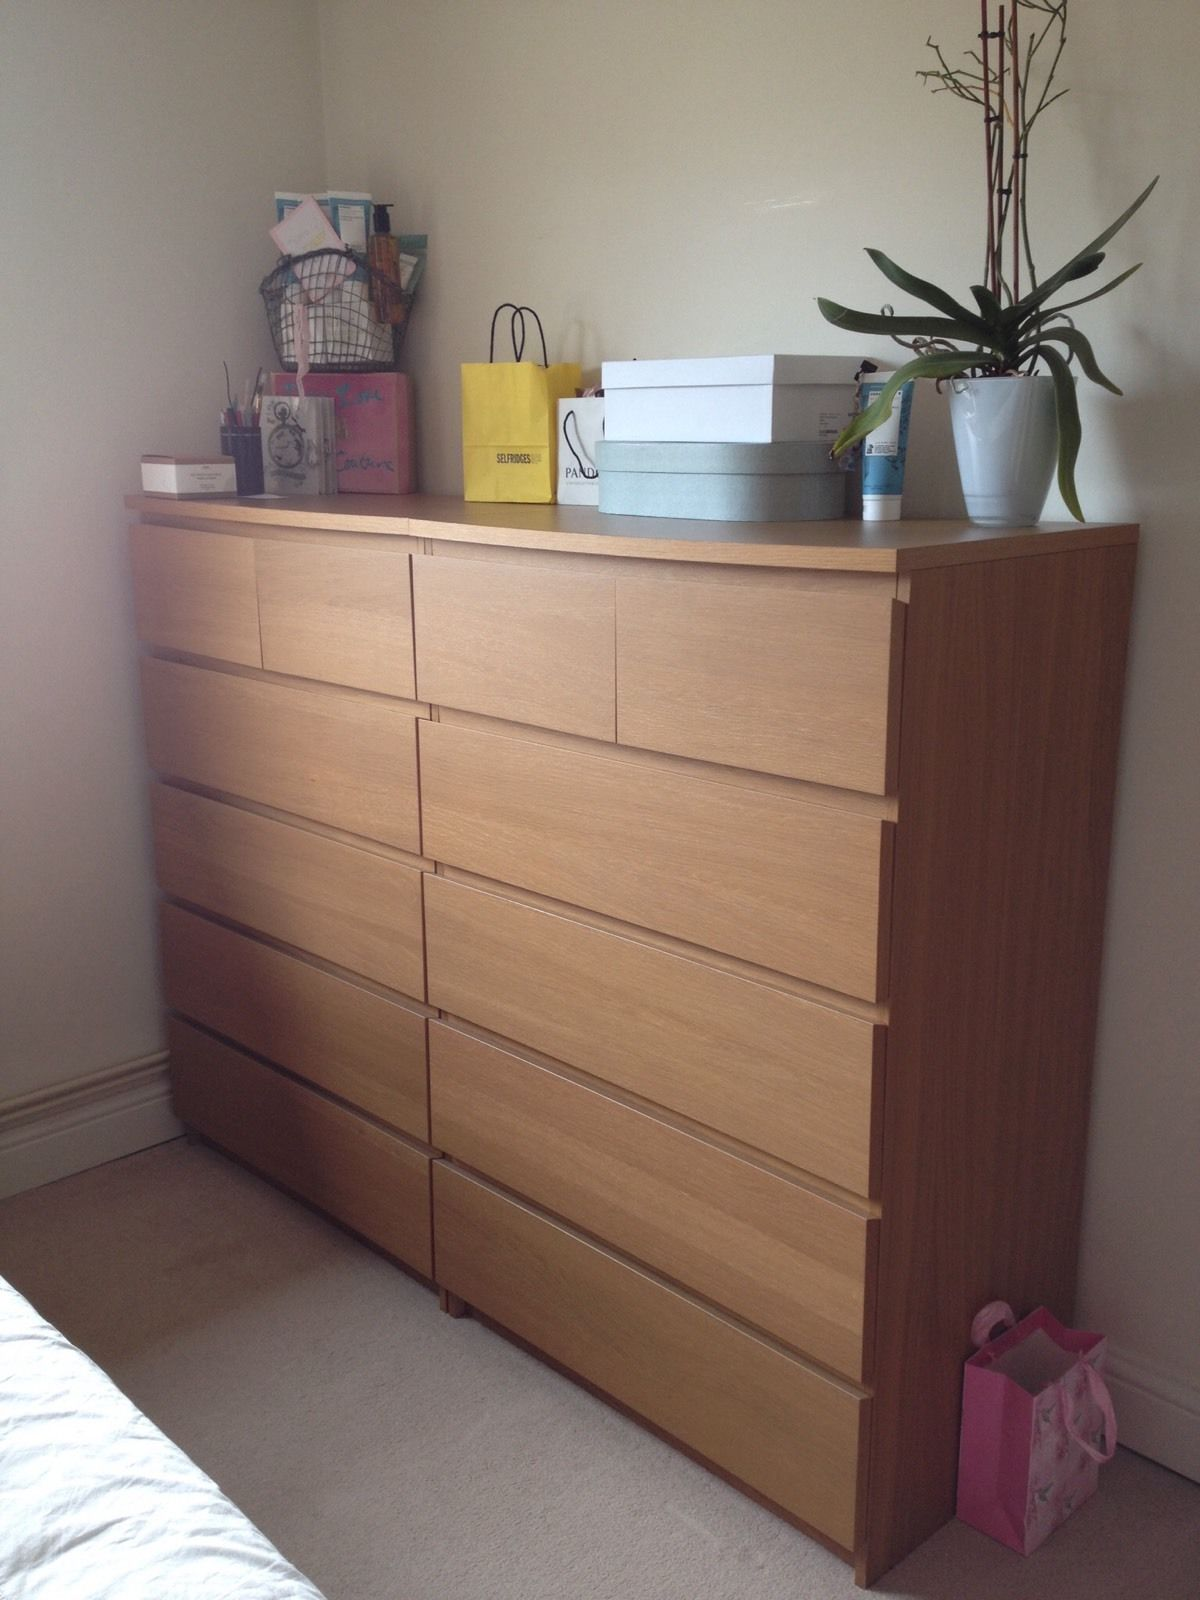 ikea-chest-of-drawers-_57